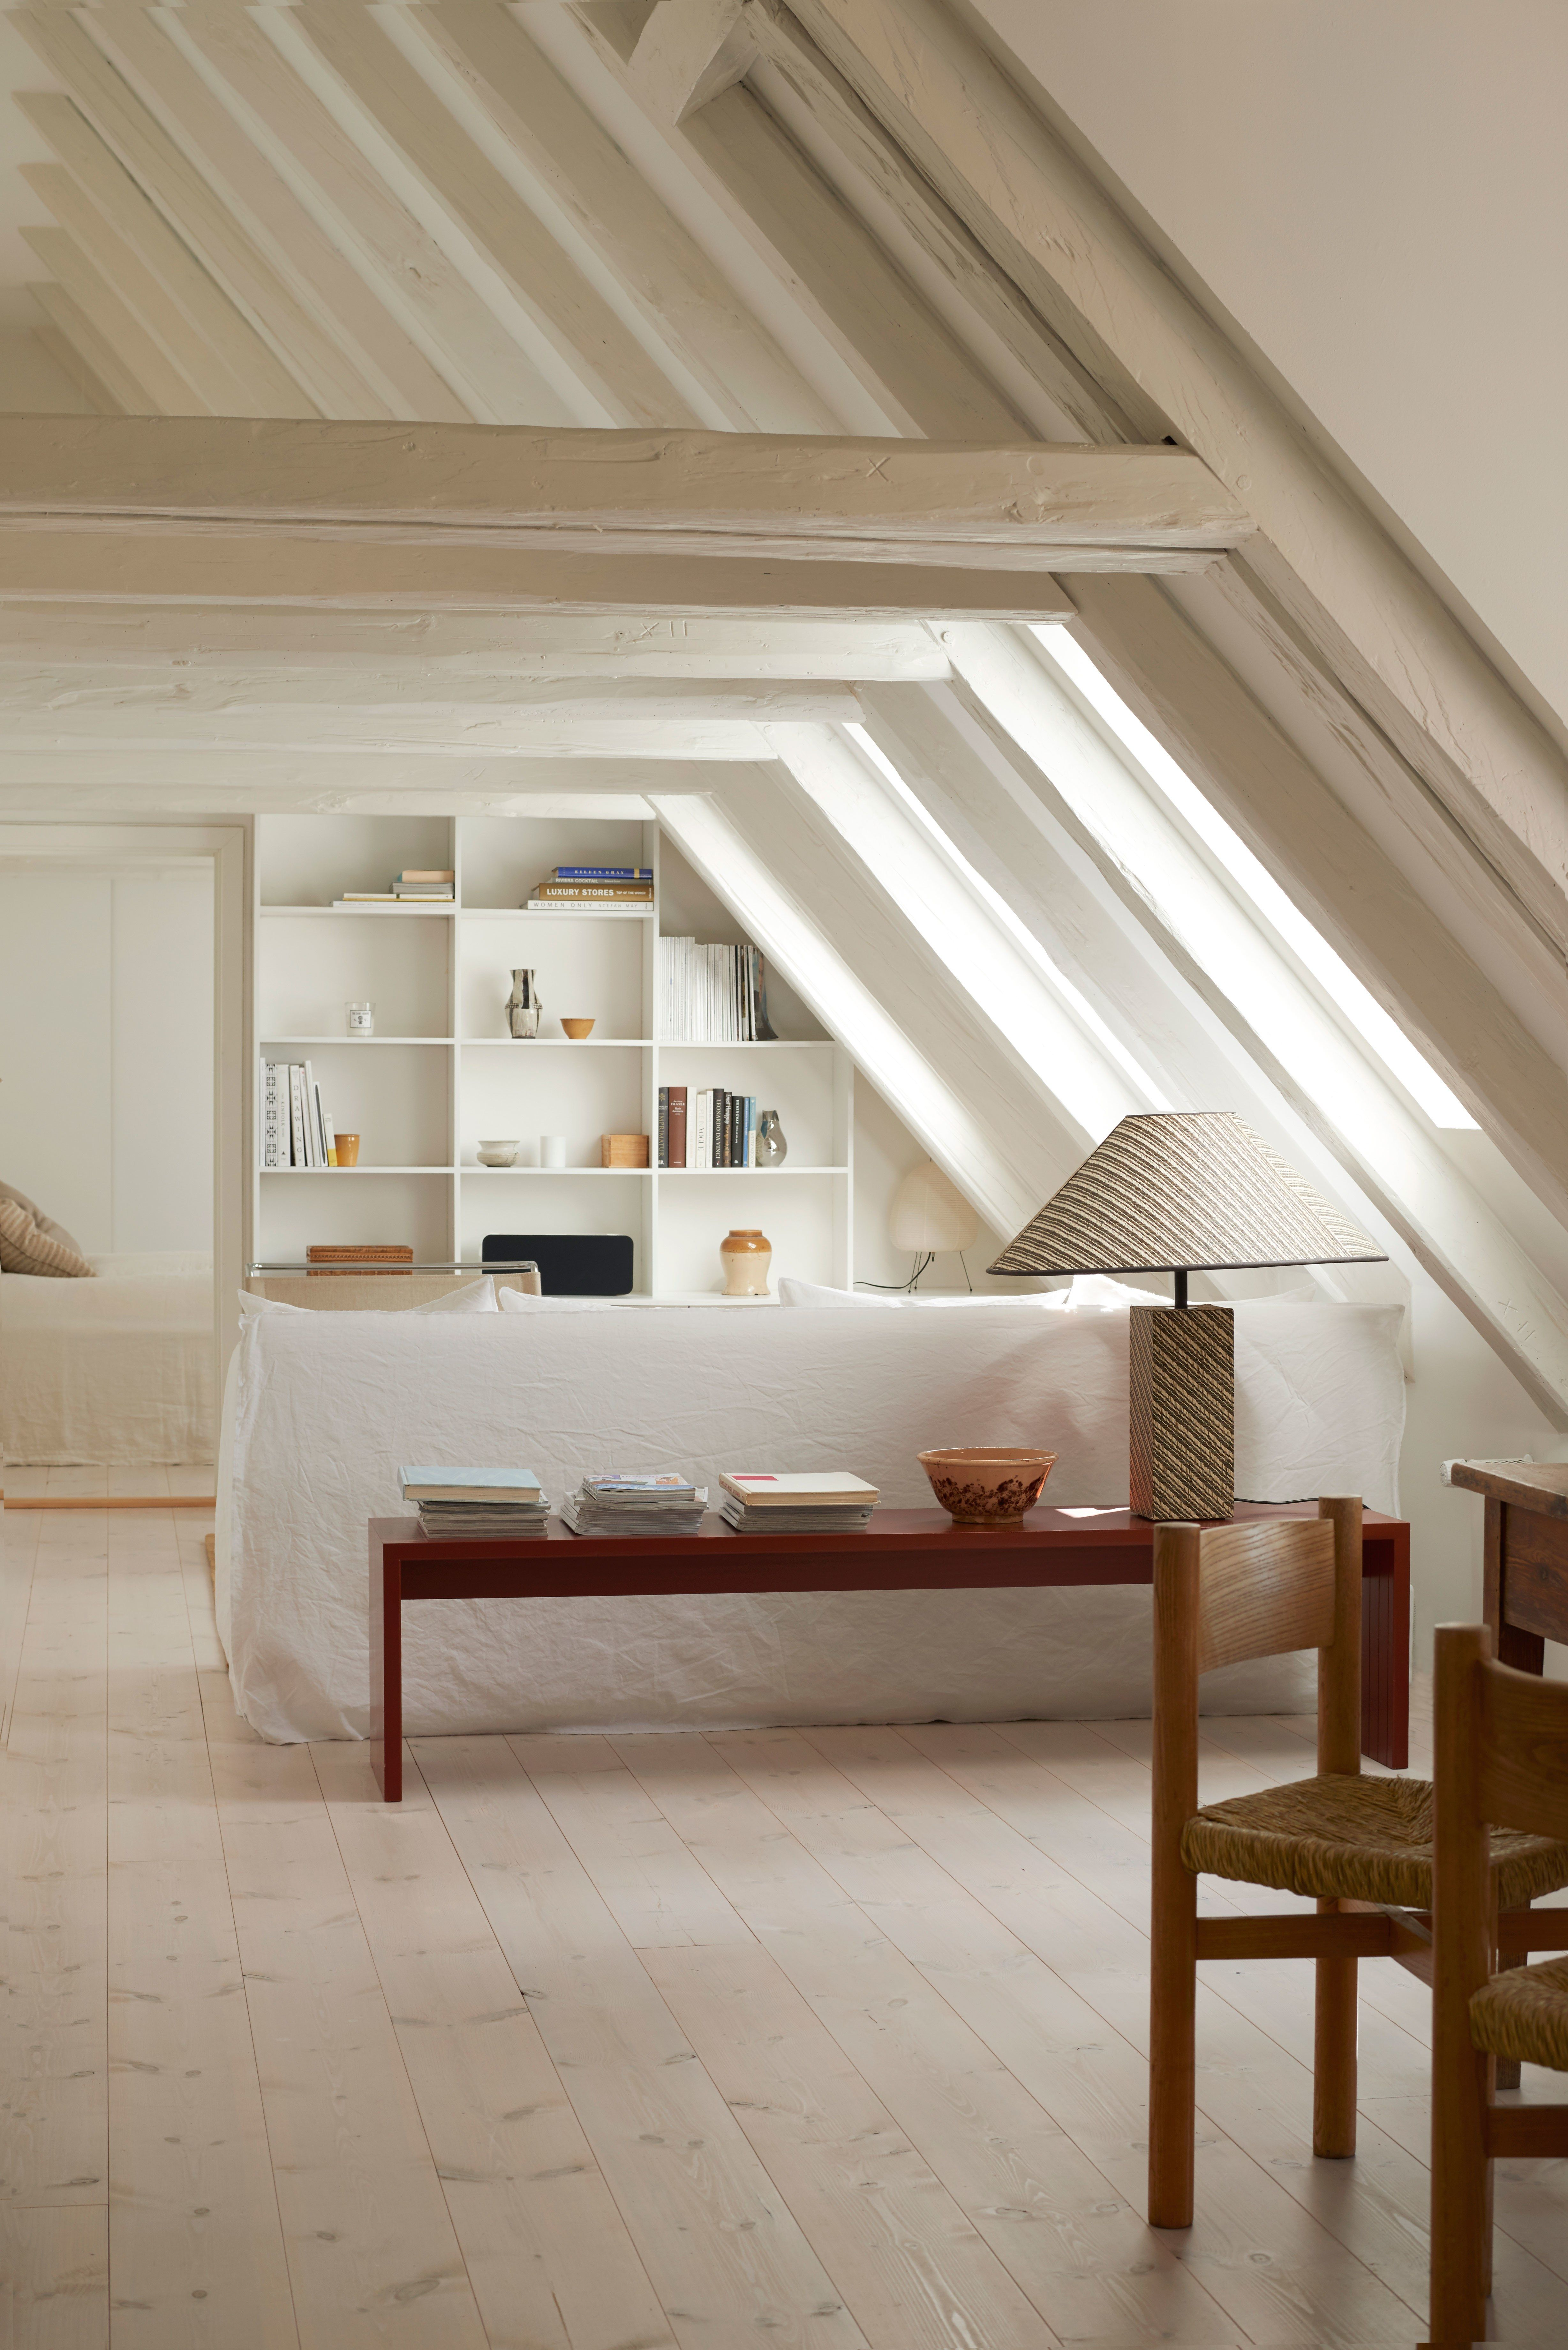 Bedroom interior roof a lightfilled copenhagen apartment with old bones and a youthful spirit